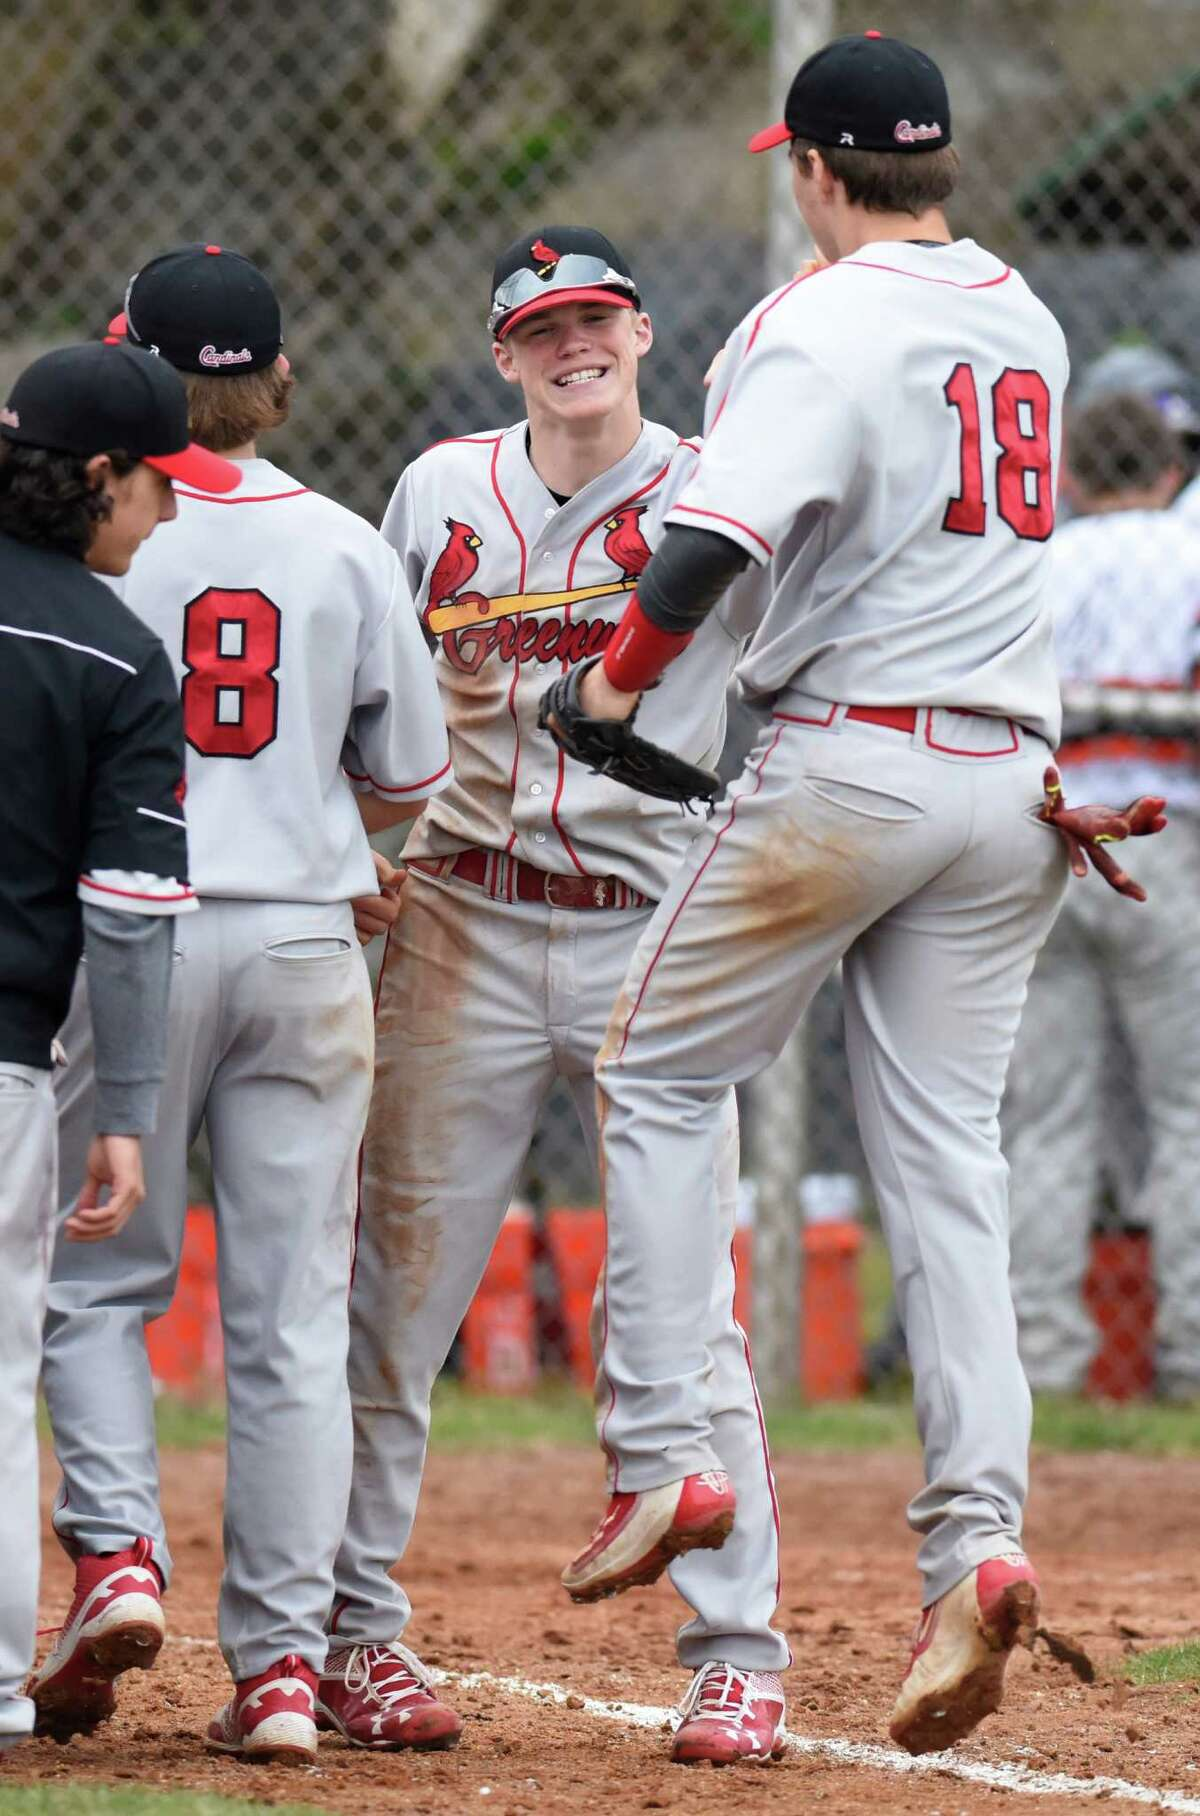 Greenwich's Michael McGrath, center, celebrates with teammate Colin Kelly (18) after Greenwich's 4-3 win over Stamford in the high school baseball game at Stamford High School in Stamford, Conn. Monday, May 2, 2016.